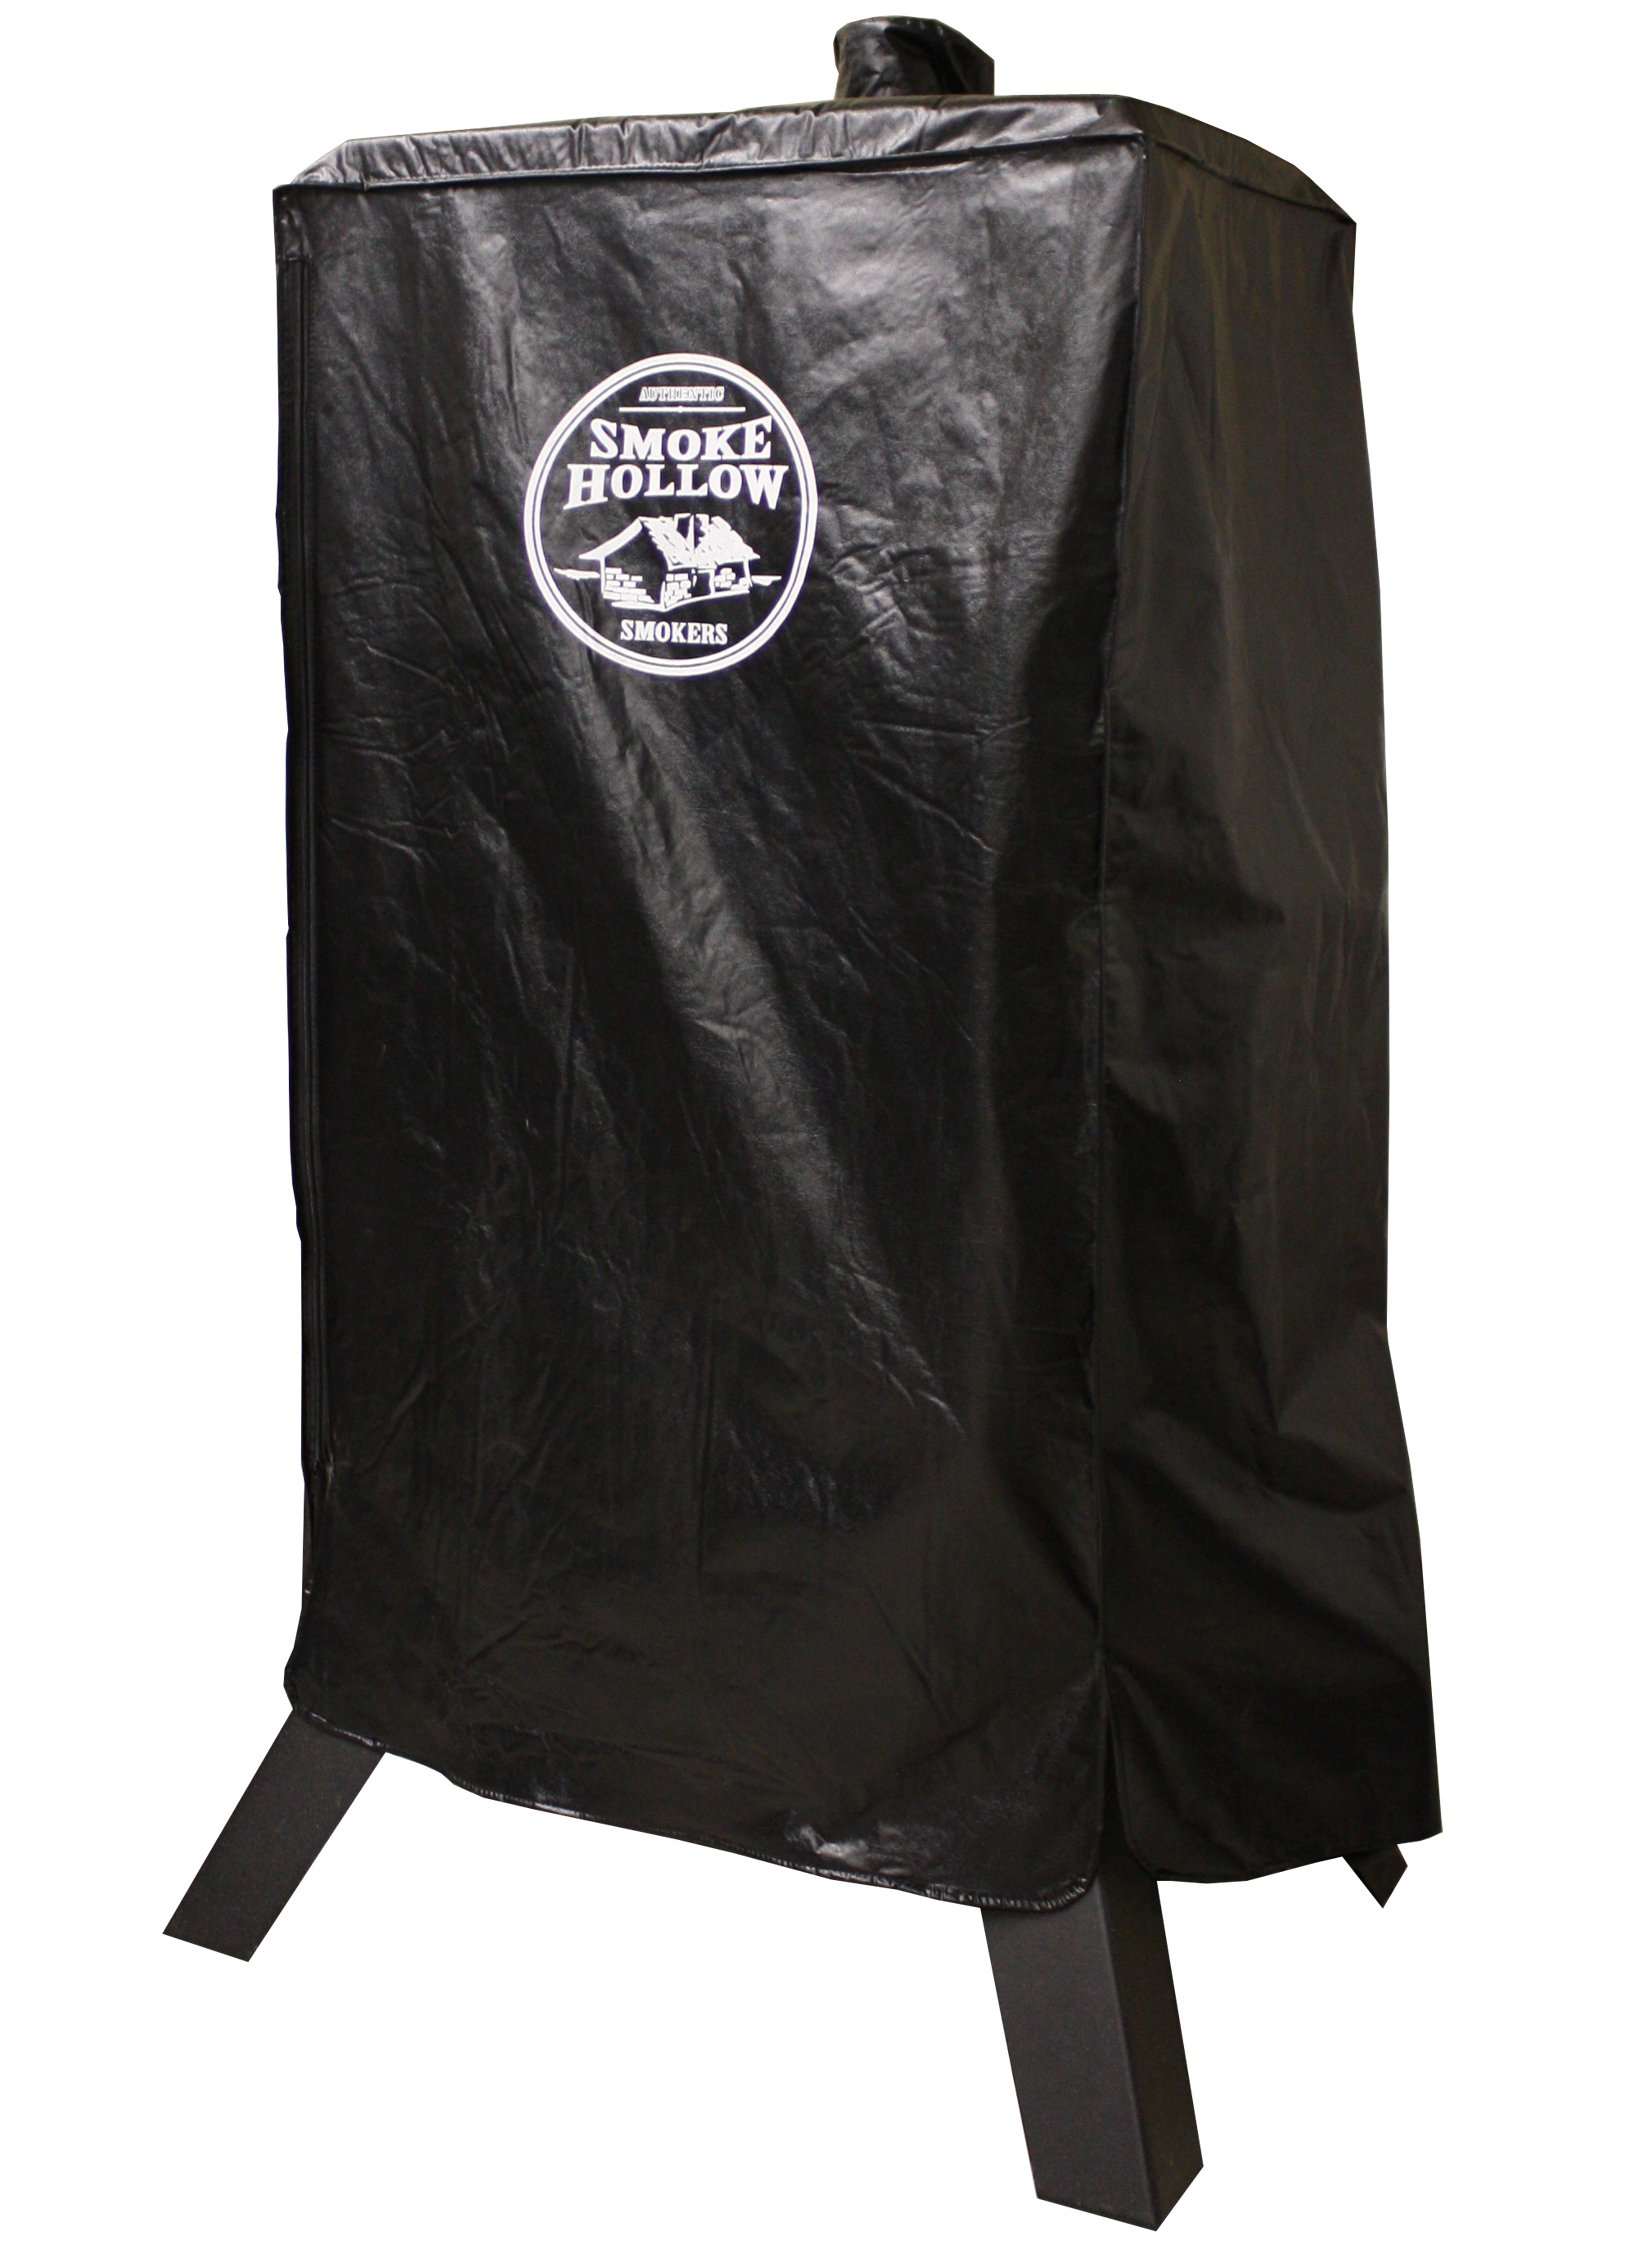 Smoke Hollow SC44 Smoker Cover for 44-Inch Smoker/Grill